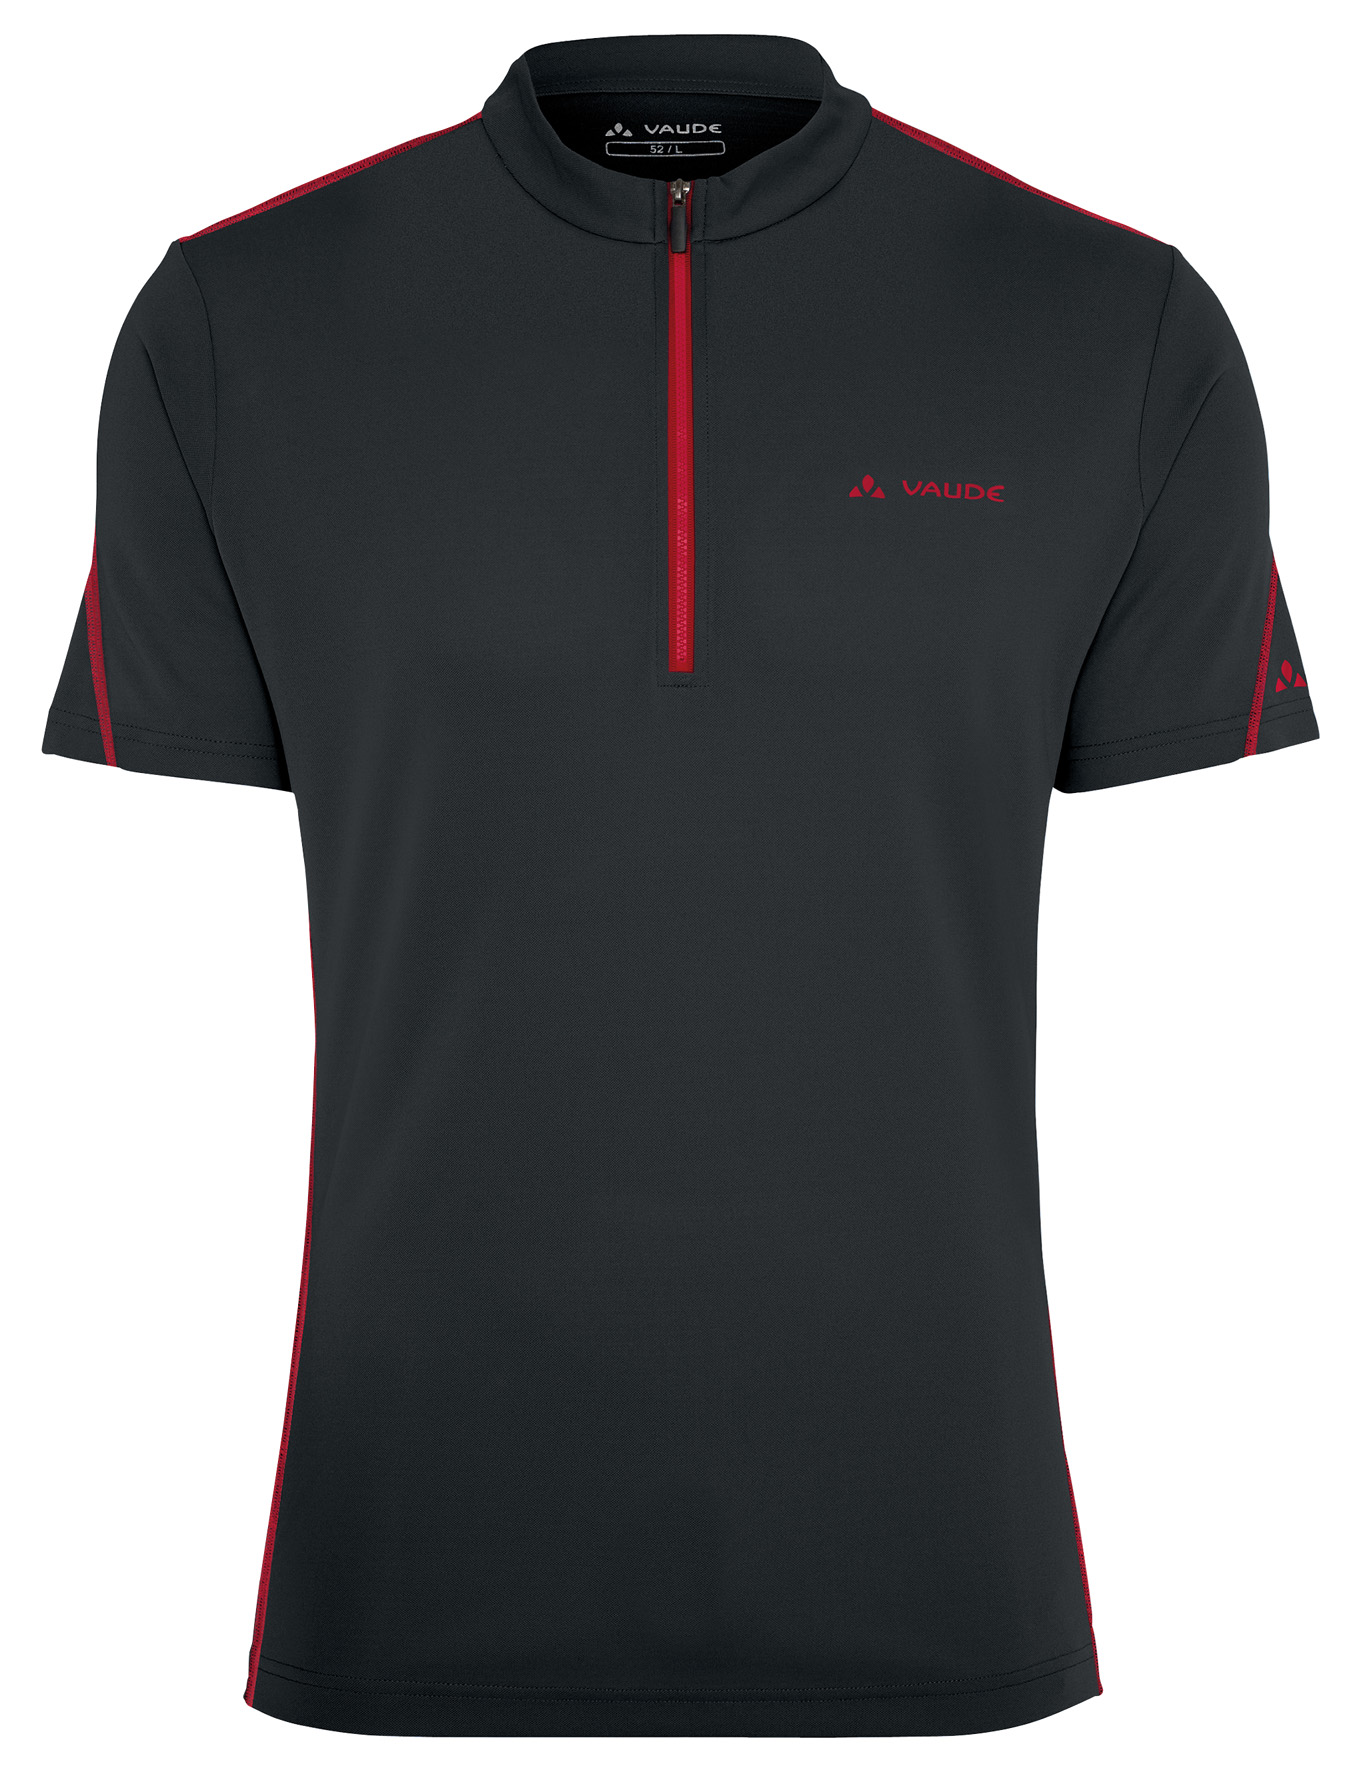 VAUDE Men´s Tamaro Shirt black/red Größe L - schneider-sports